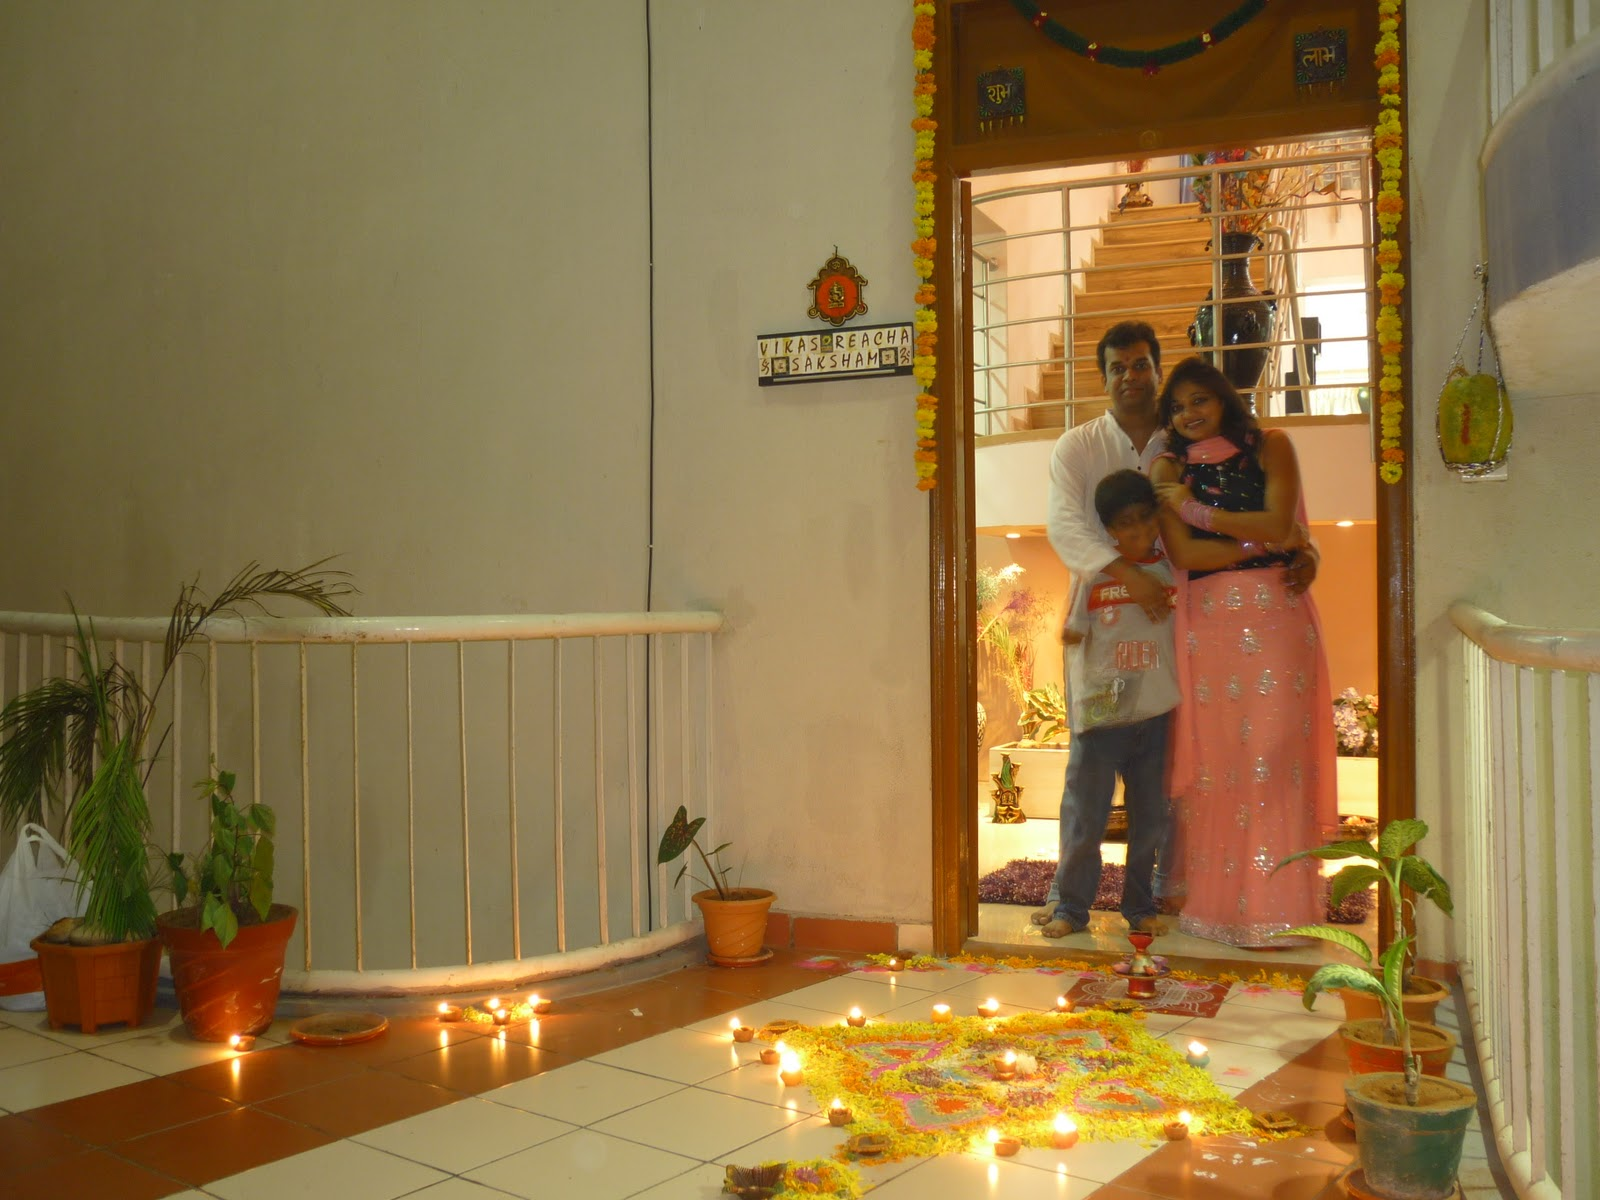 Reacha blogging first diwali in hyderabad new home for Home decorations ideas for diwali